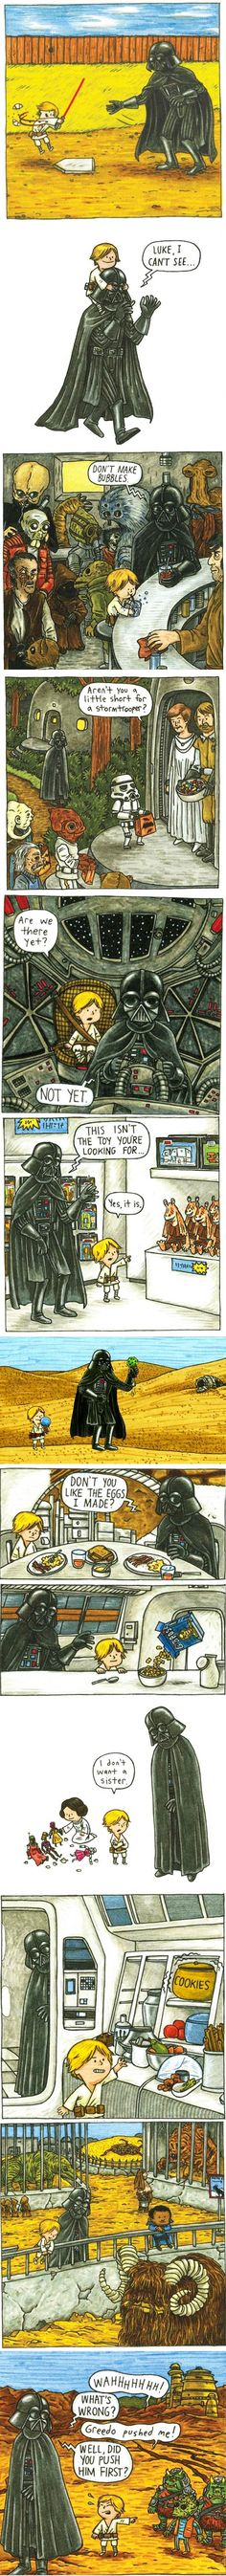 If Darth Vader was a good father. awesome